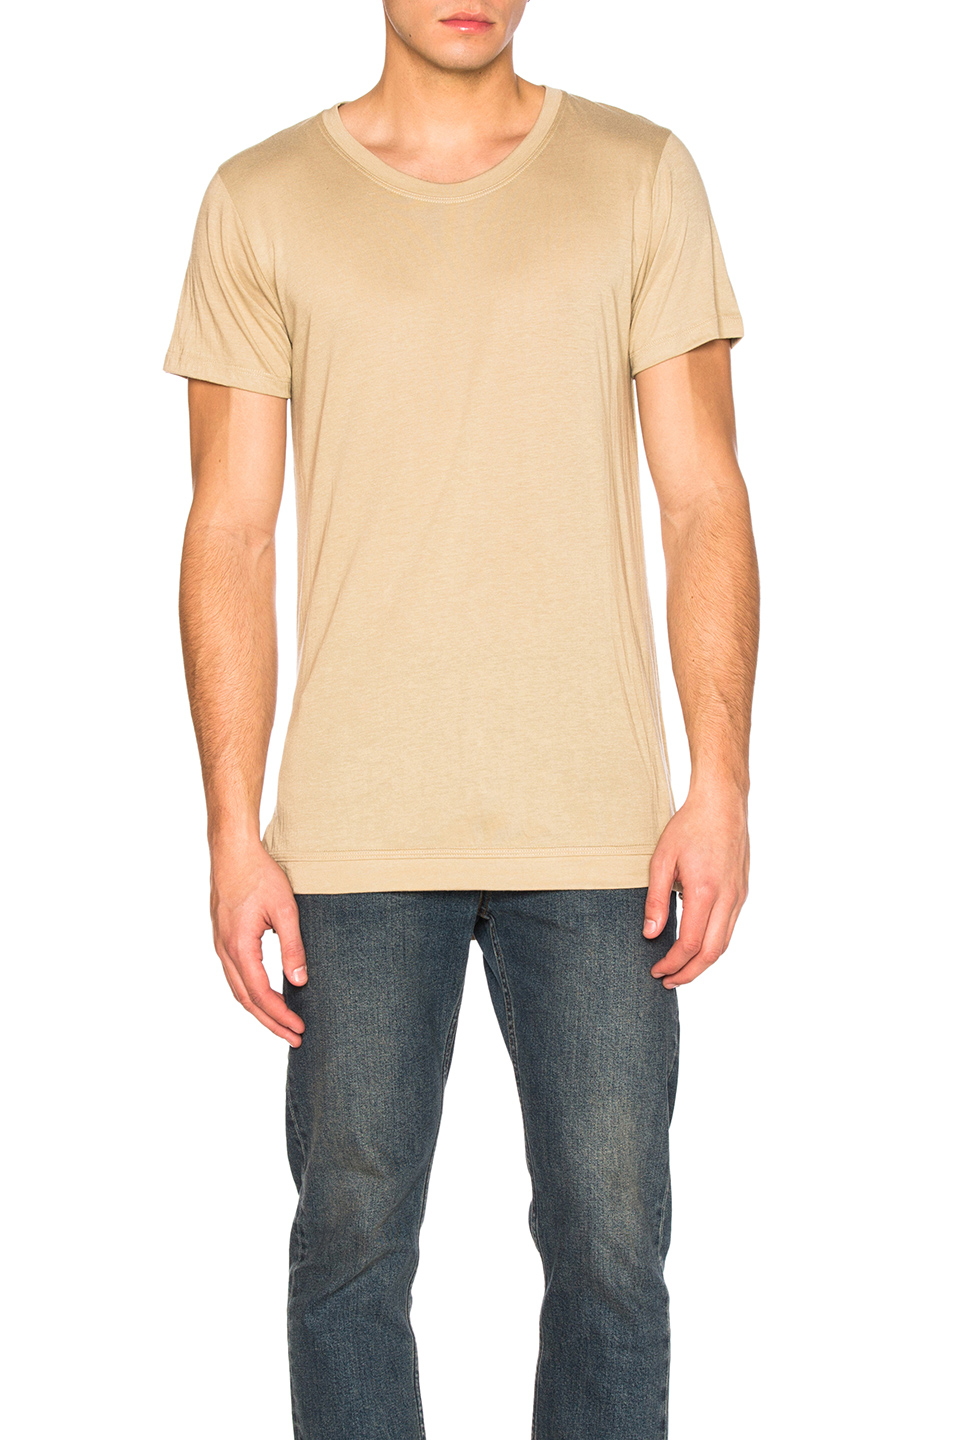 JOHN ELLIOTT Mercer Tee in Neutrals